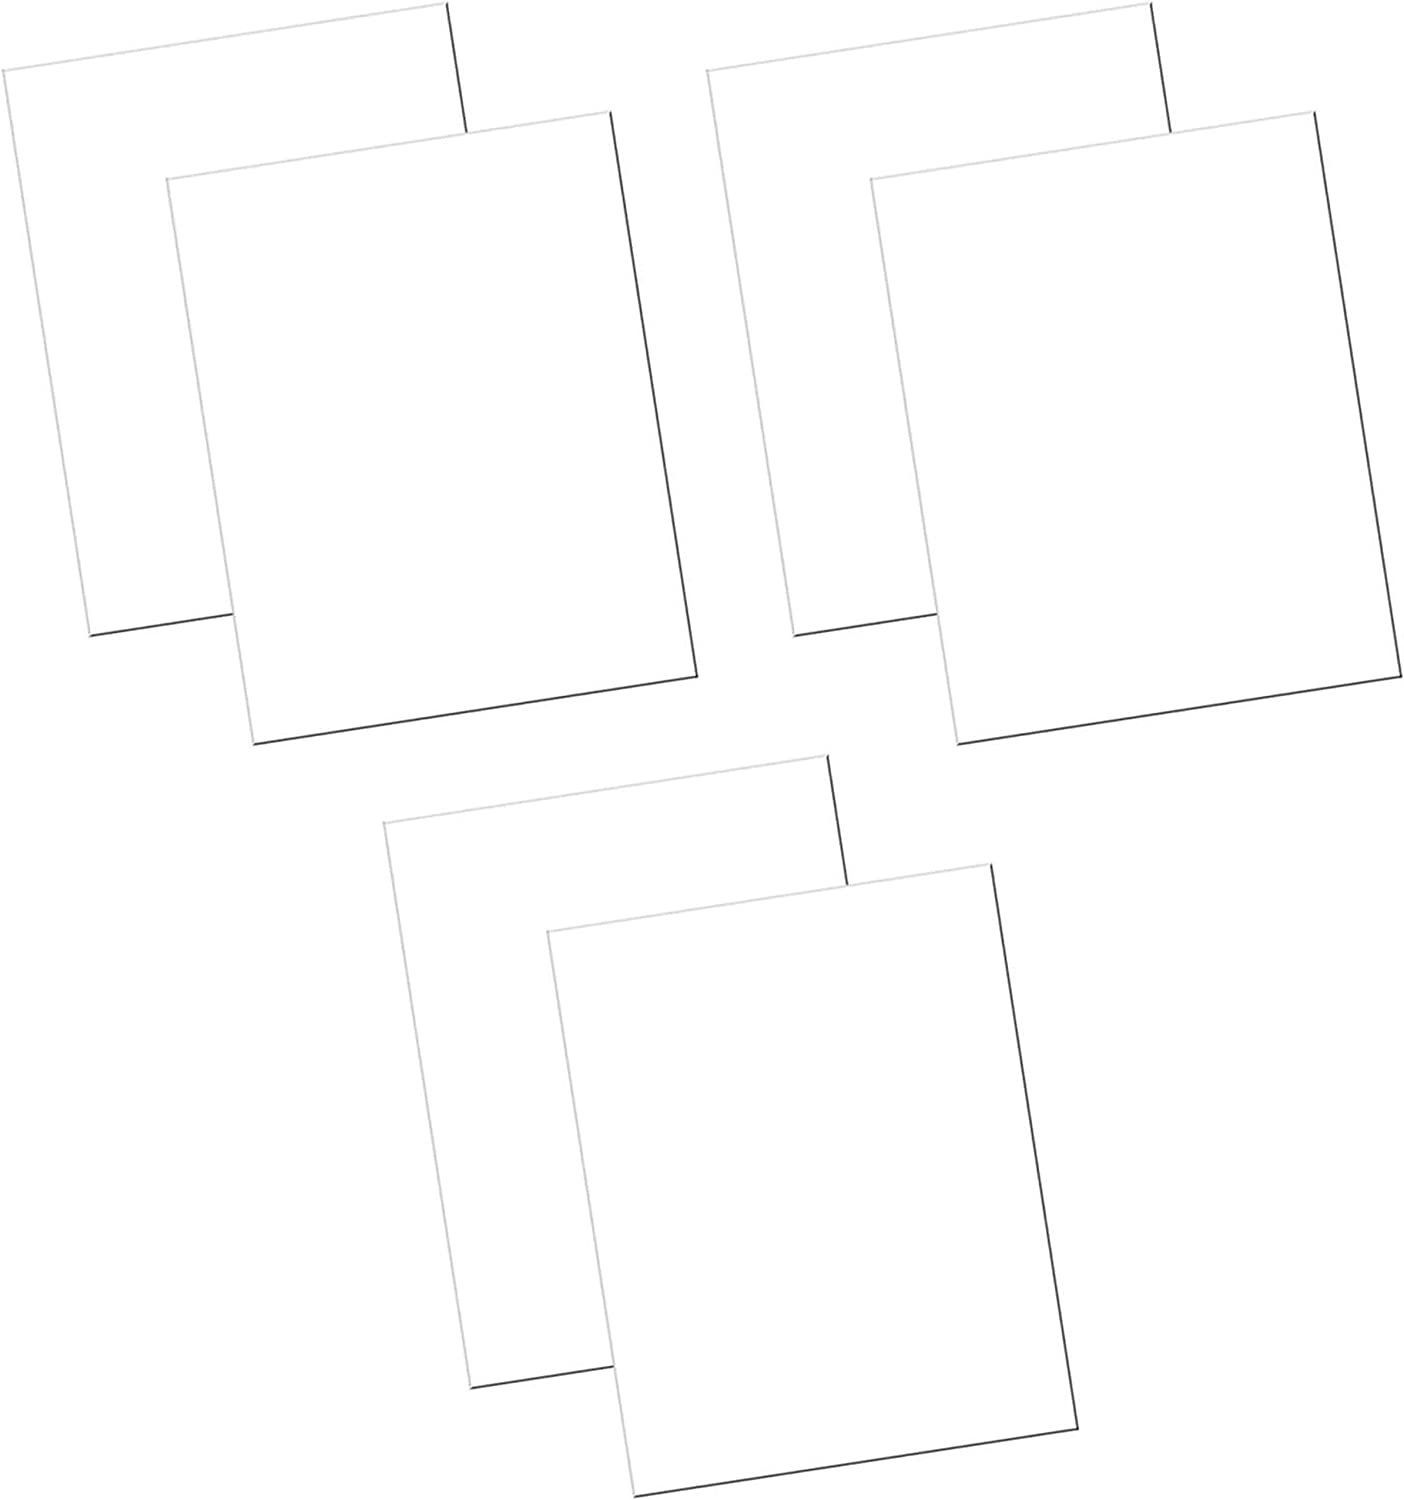 Four Pack UCreate Economy Poster Board White 100 Sheets//Carton 22 x 28